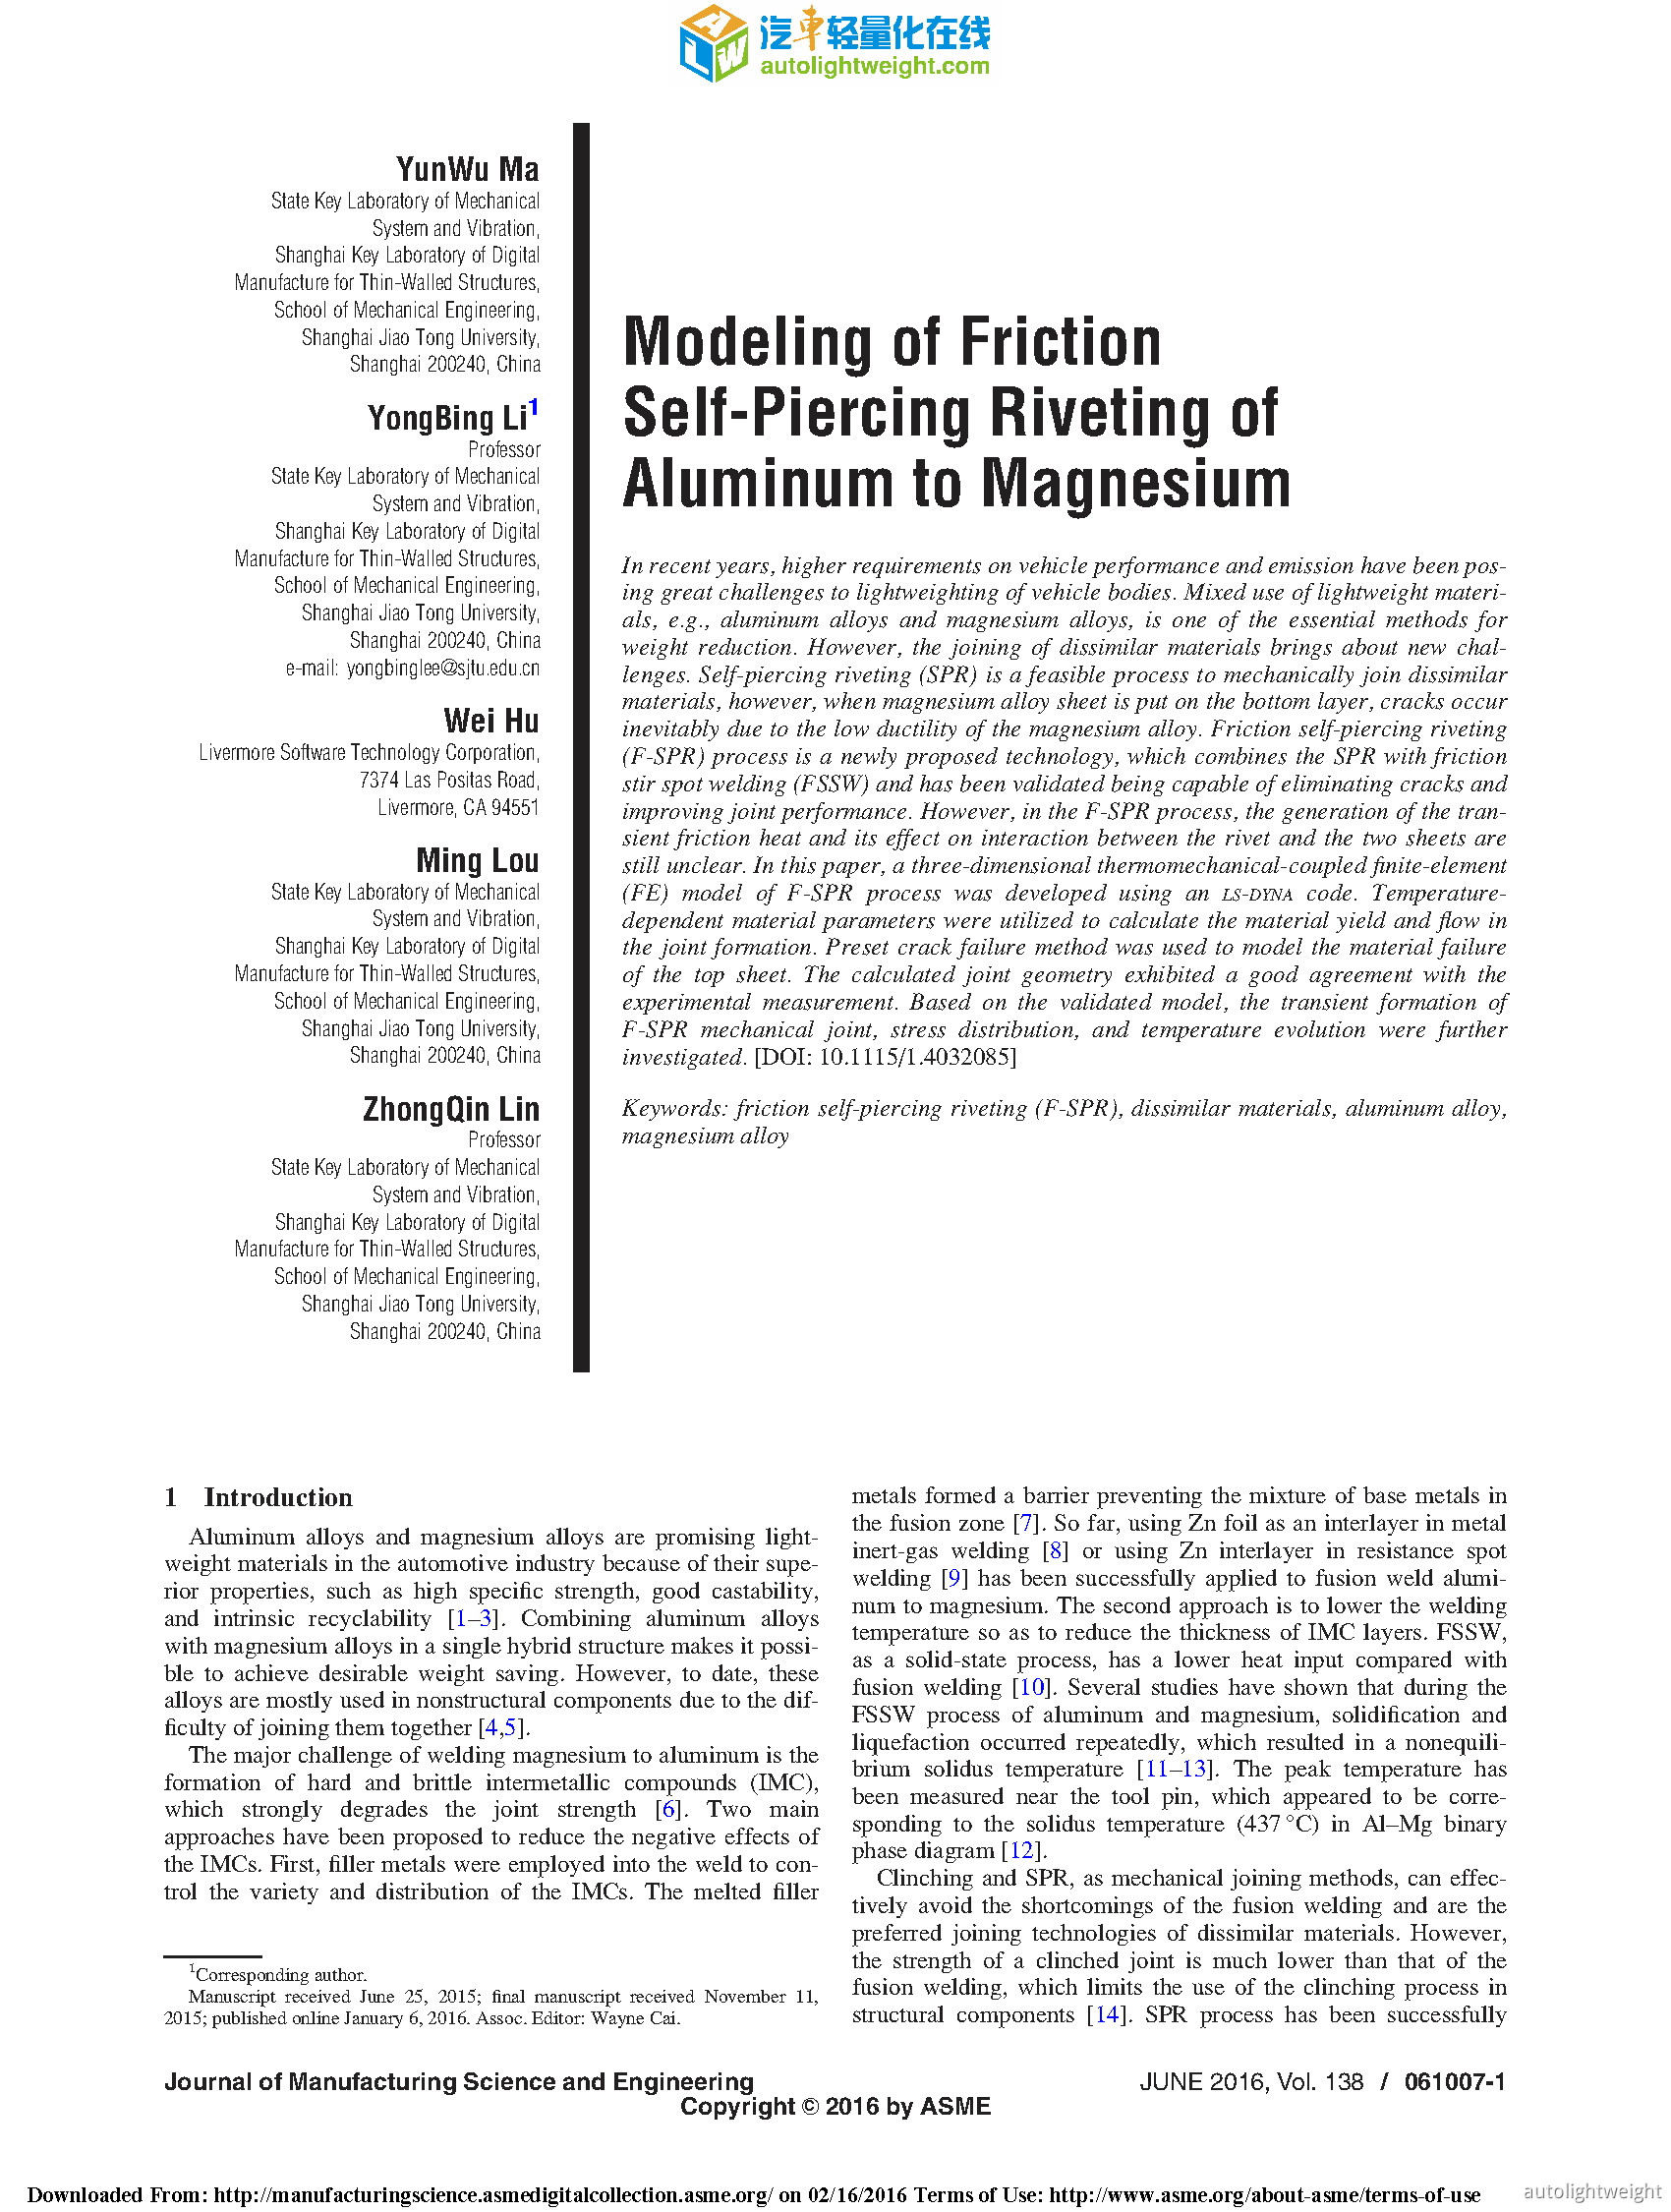 Modeling of Friction Self-Piercing Riveting of Aluminum to Magnesium_页面_1.png